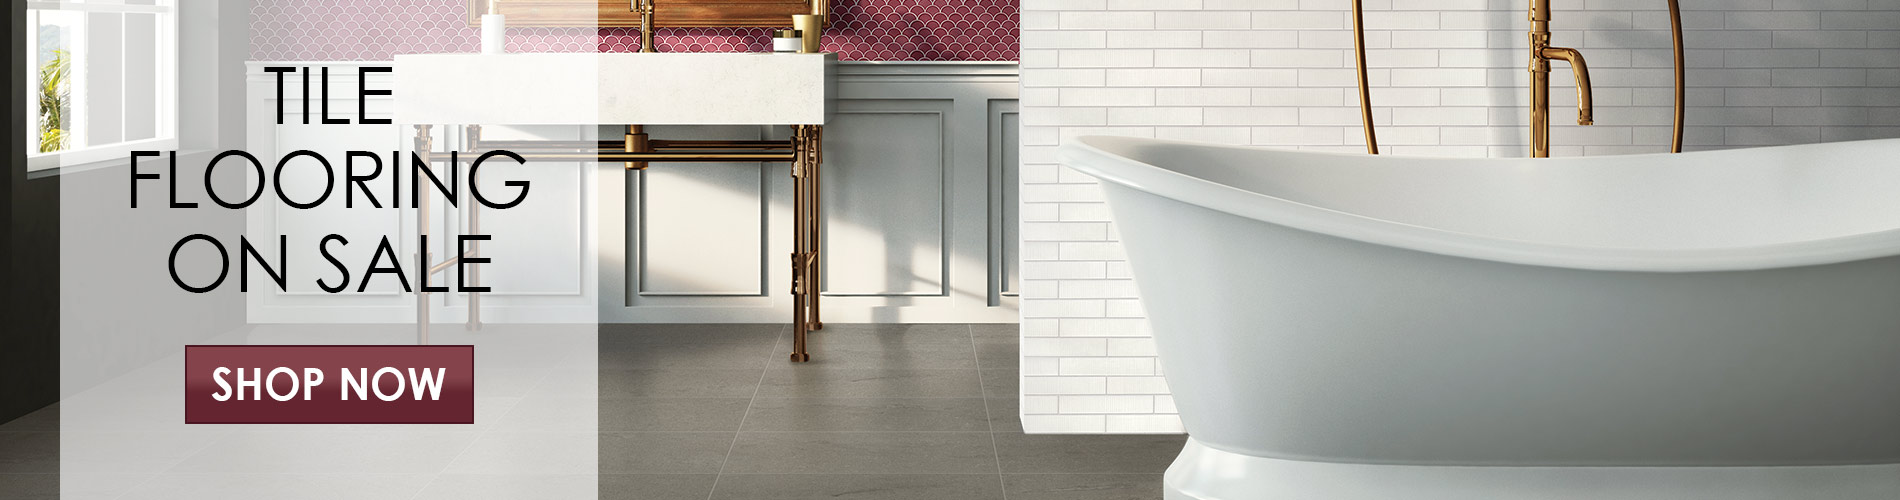 Tile On Sale Now at Floorcrafters in Onalaska, Wisconsin